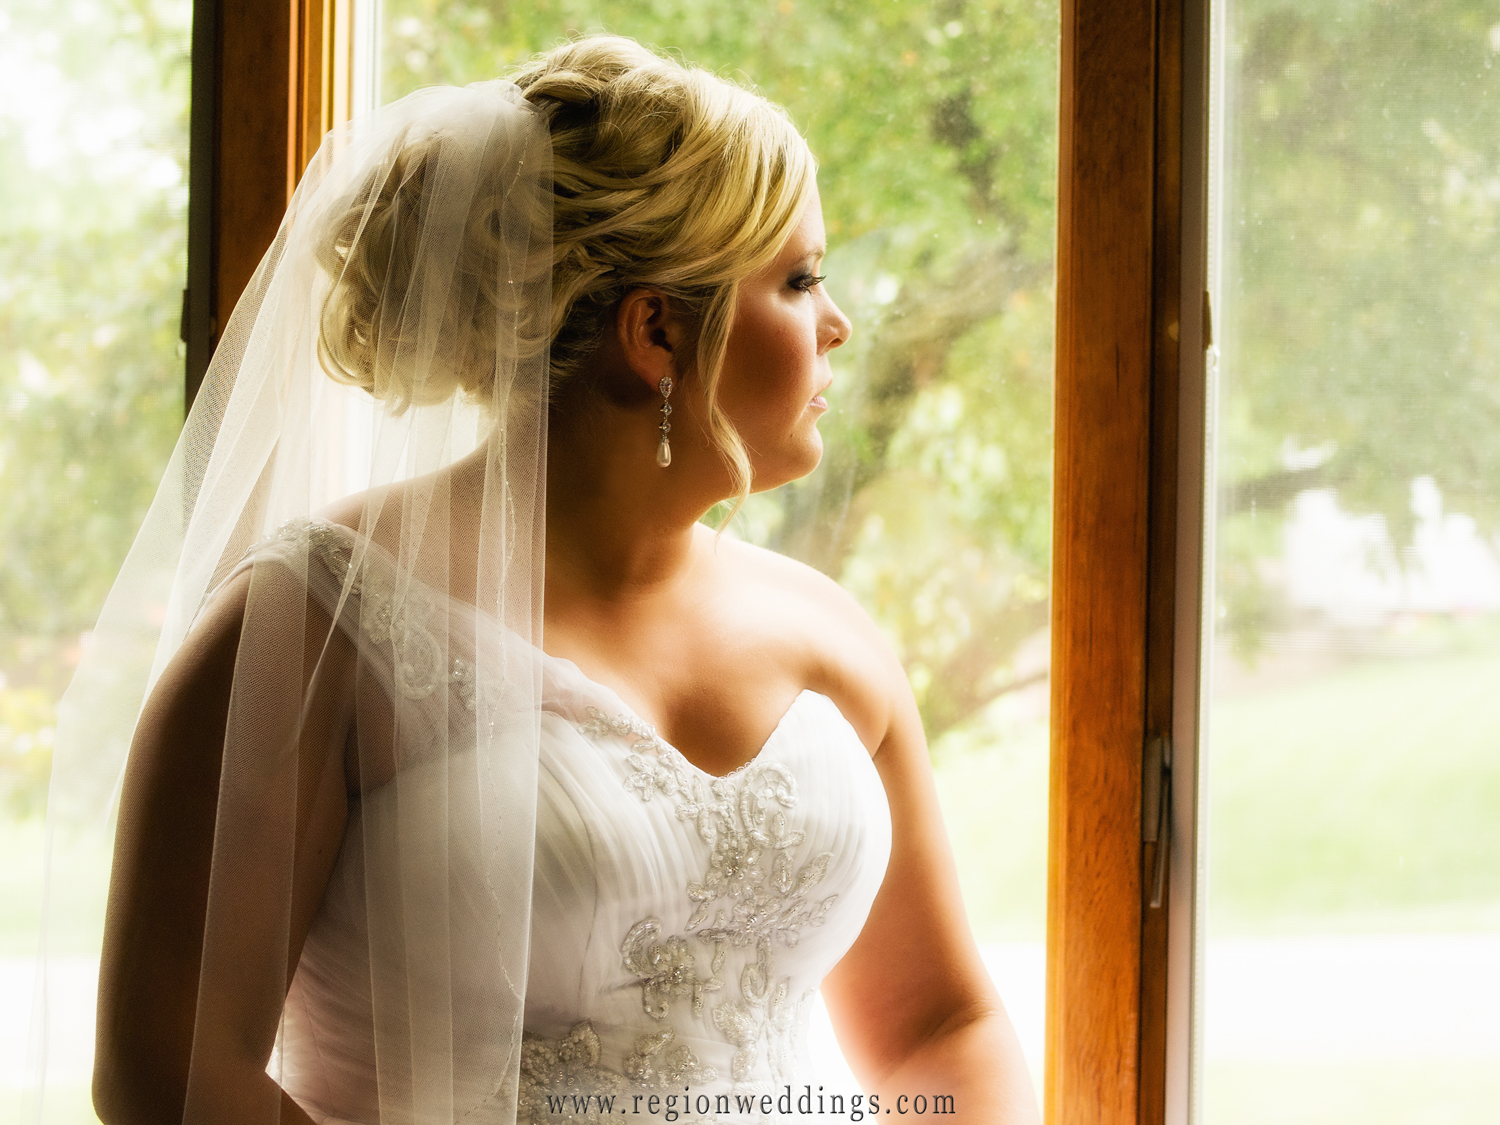 The bride looks out the window of her childhood home as sun bathes her in warm light illuminating her beautiful wedding veil.